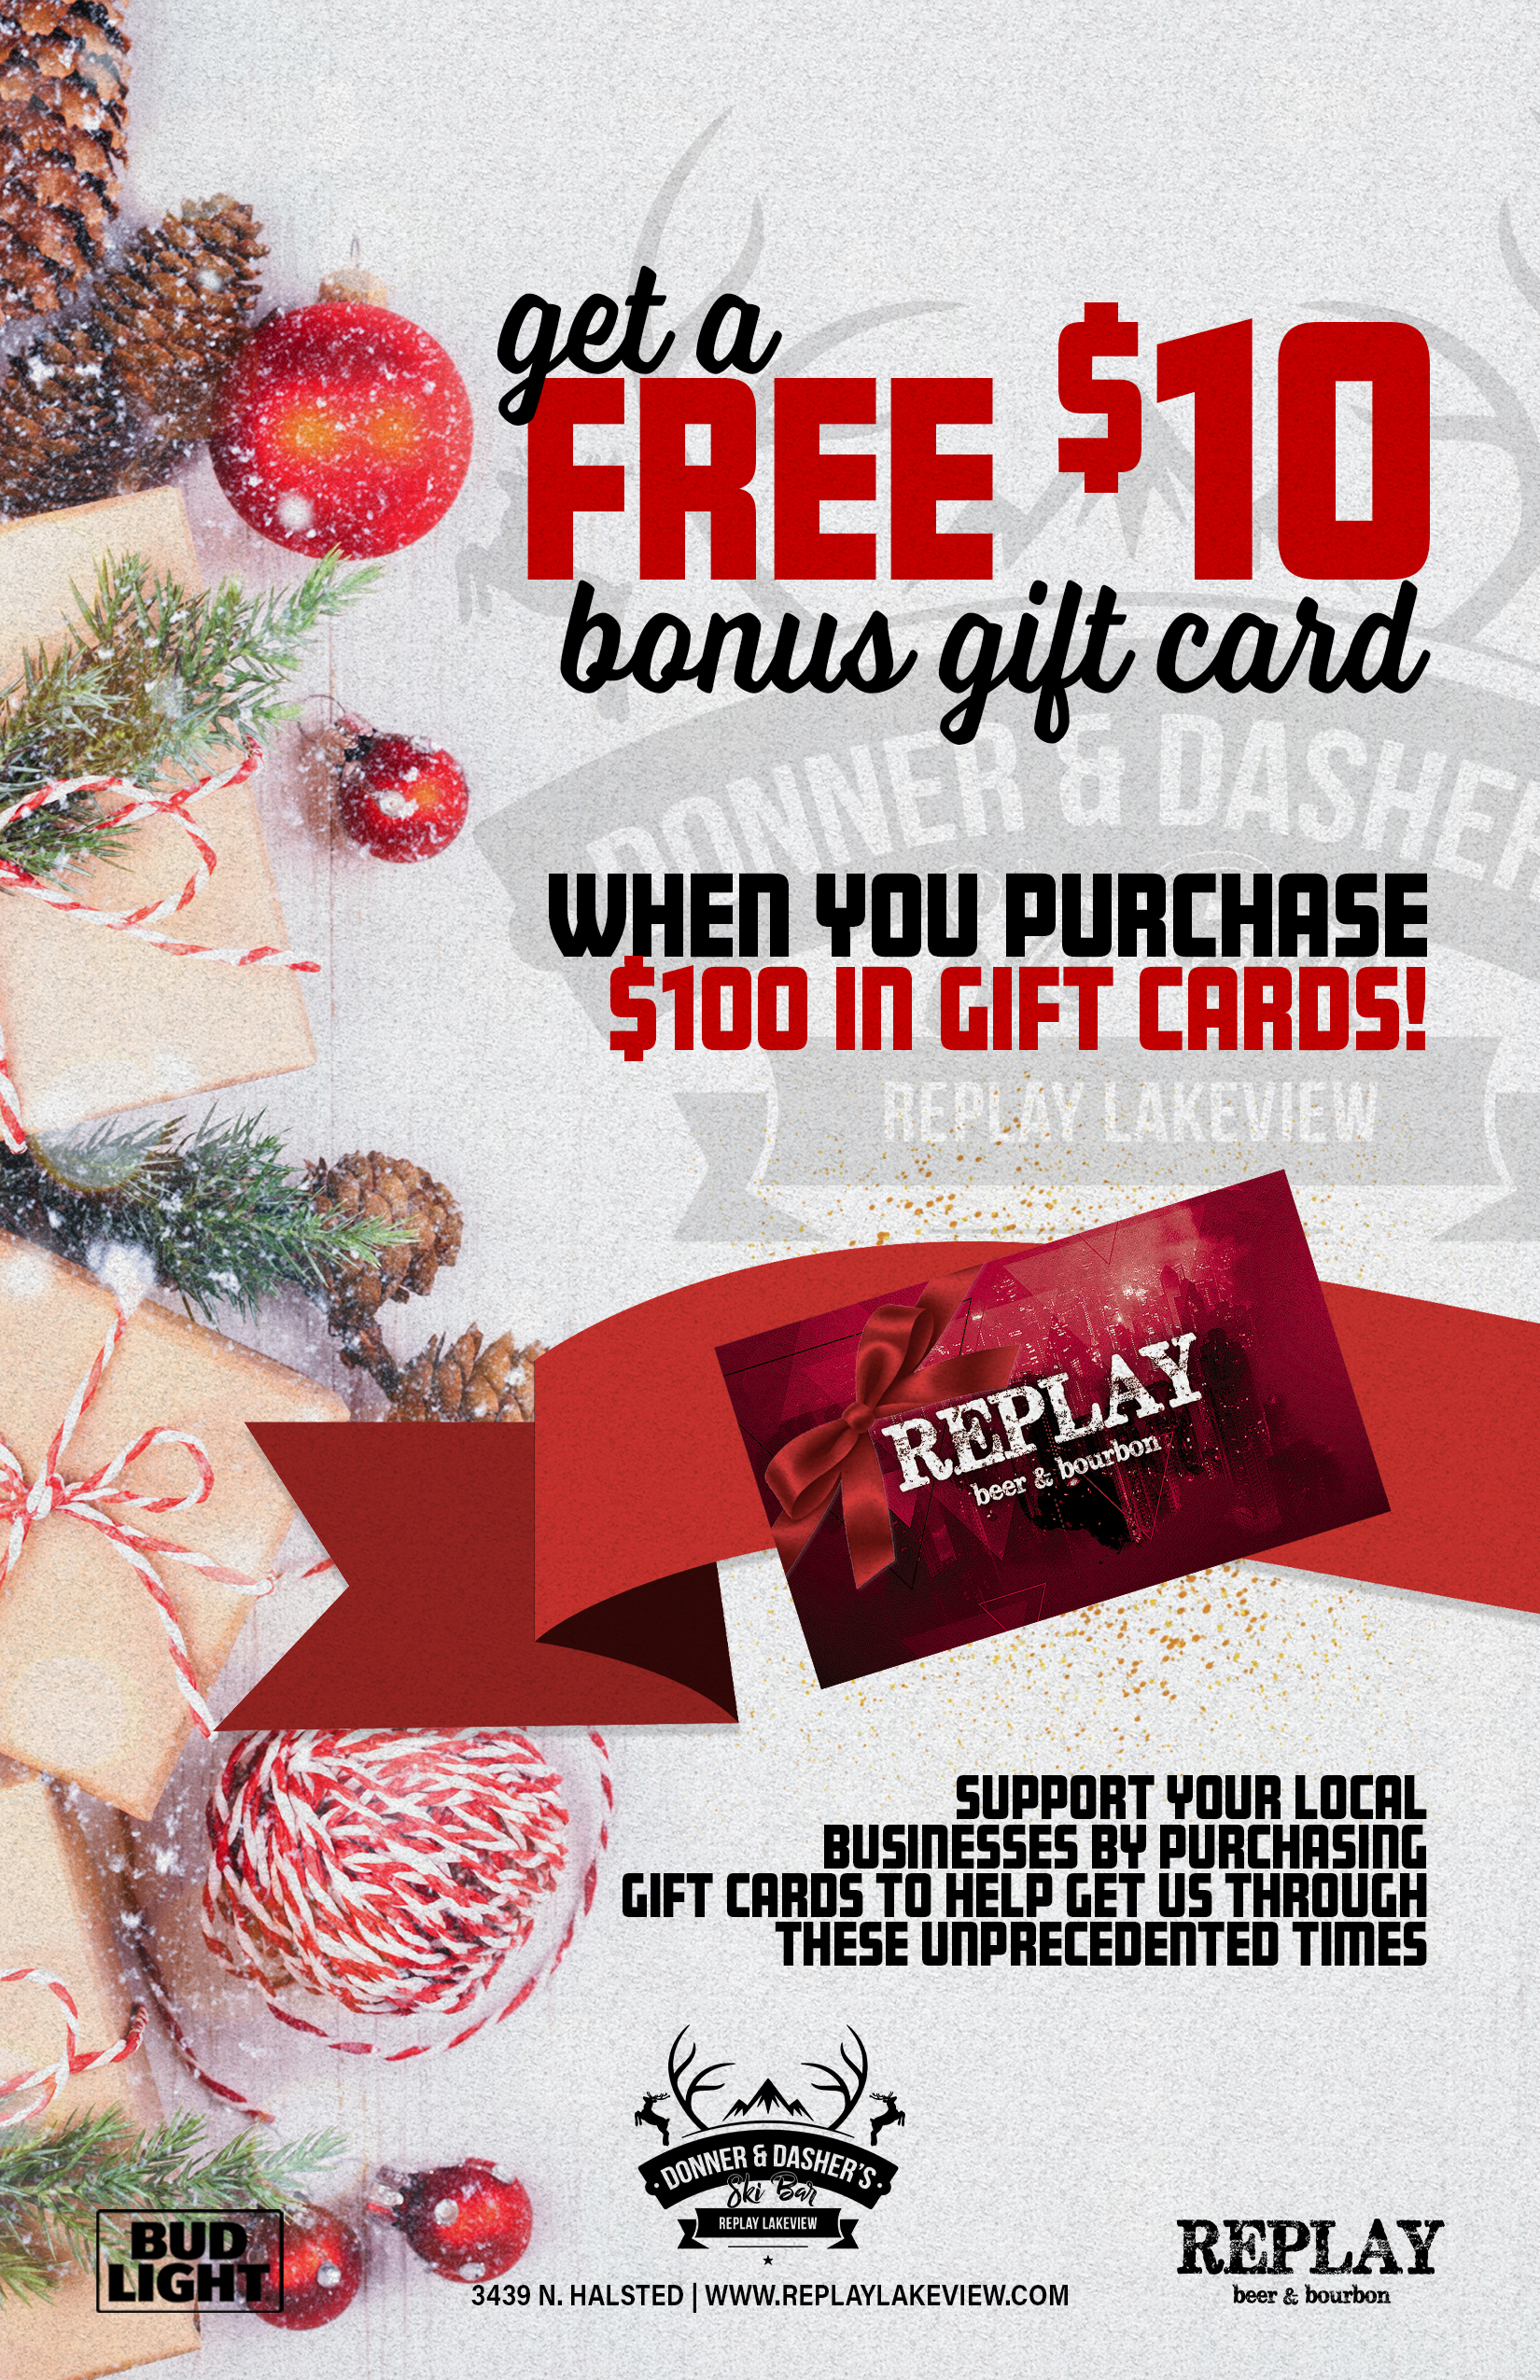 RP_GIFTCARD11x17(6)